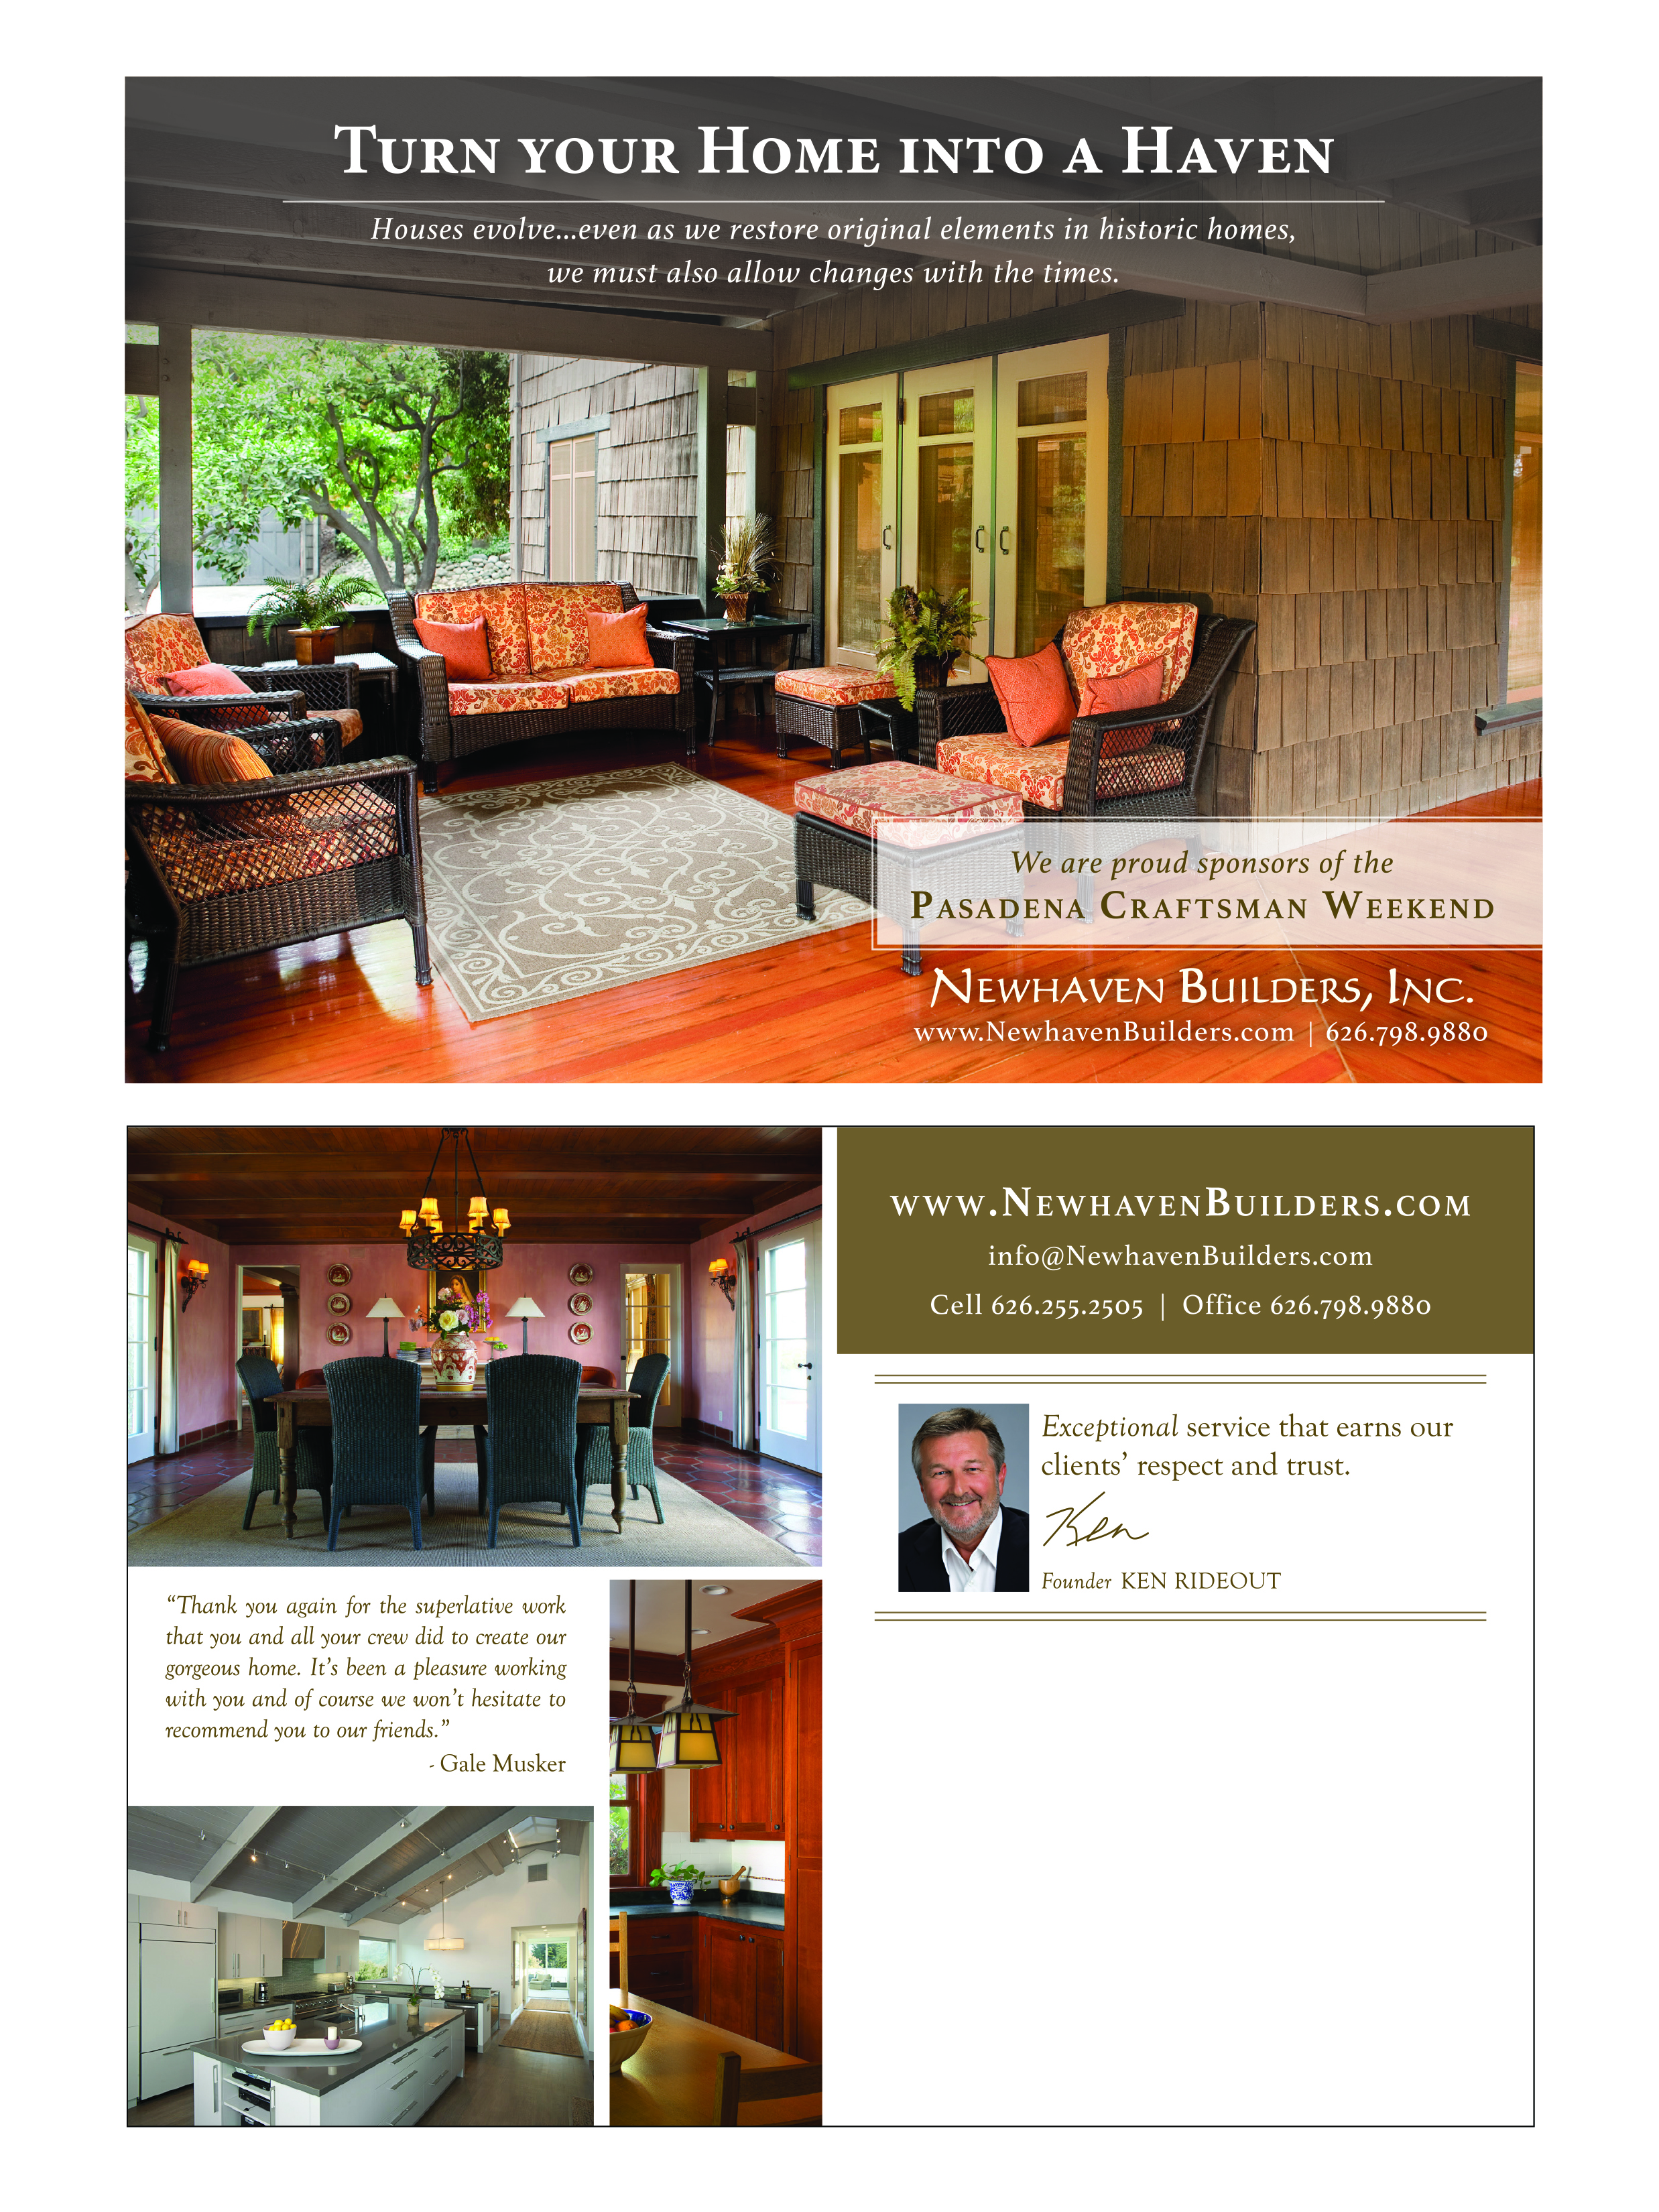 Home Remodel Postcard - Direct Mail Campaign